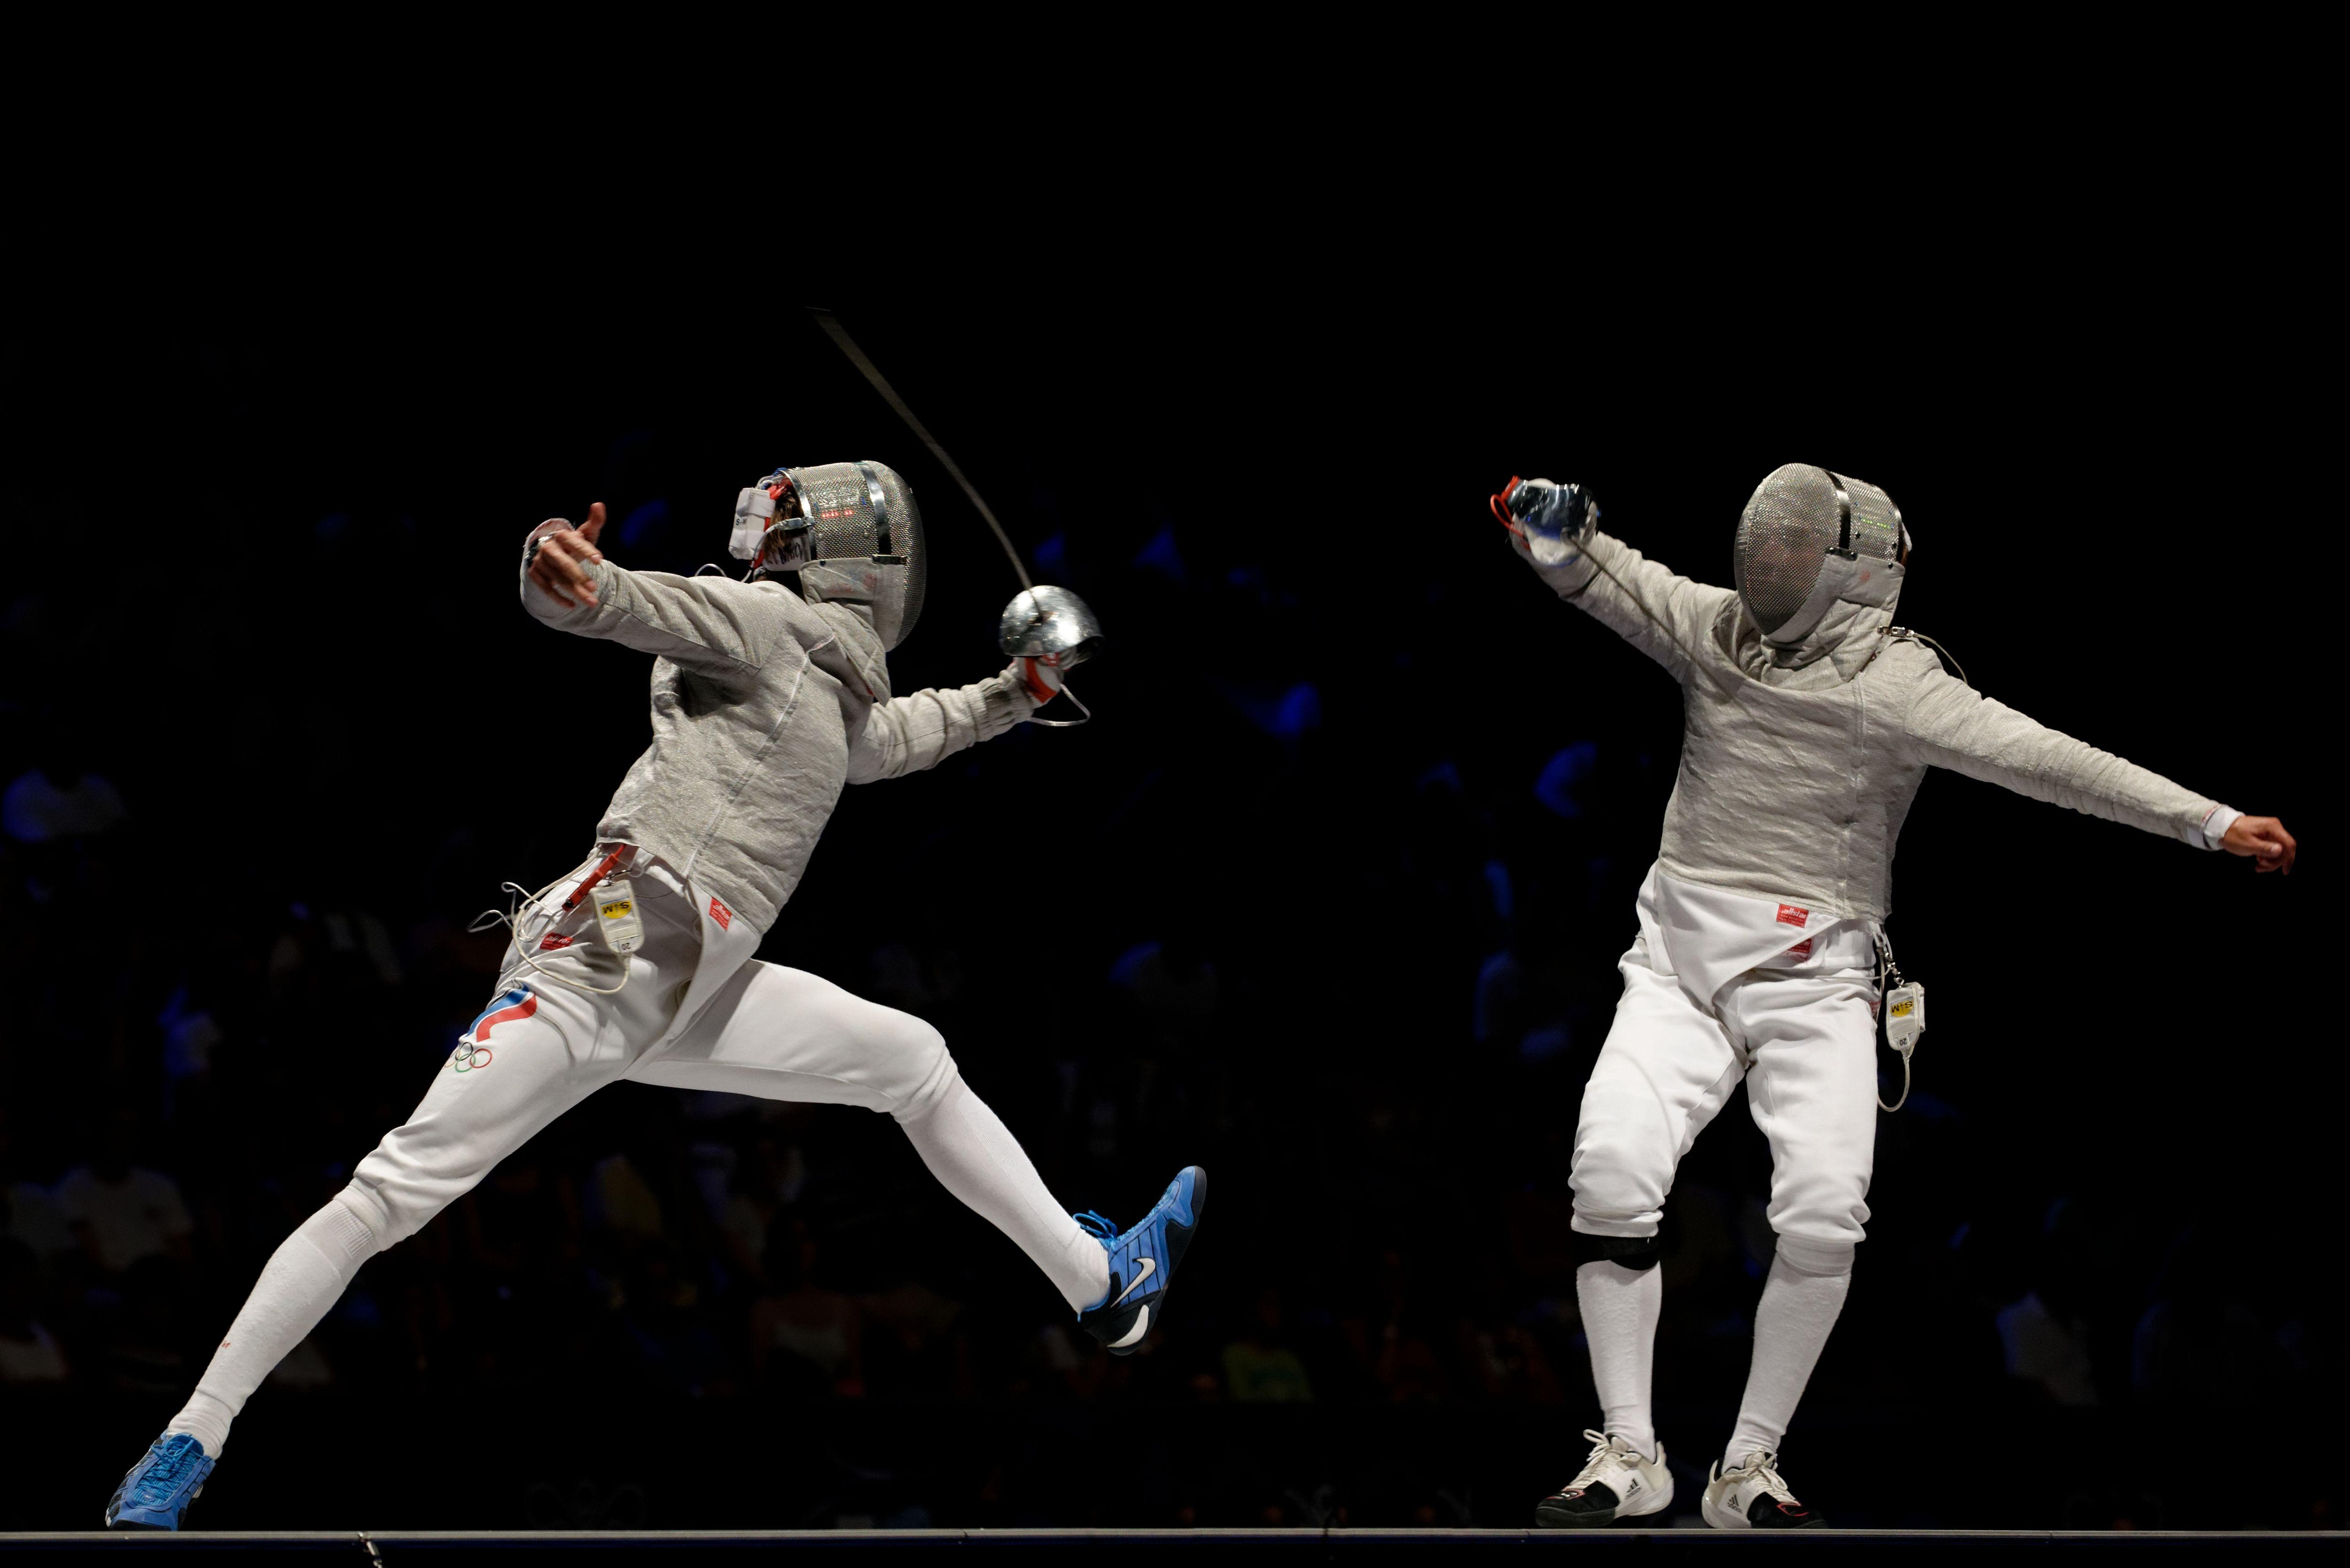 File:Final 2013 Fencing WCH SMS-IN t201709.jpg - Wikimedia Commons